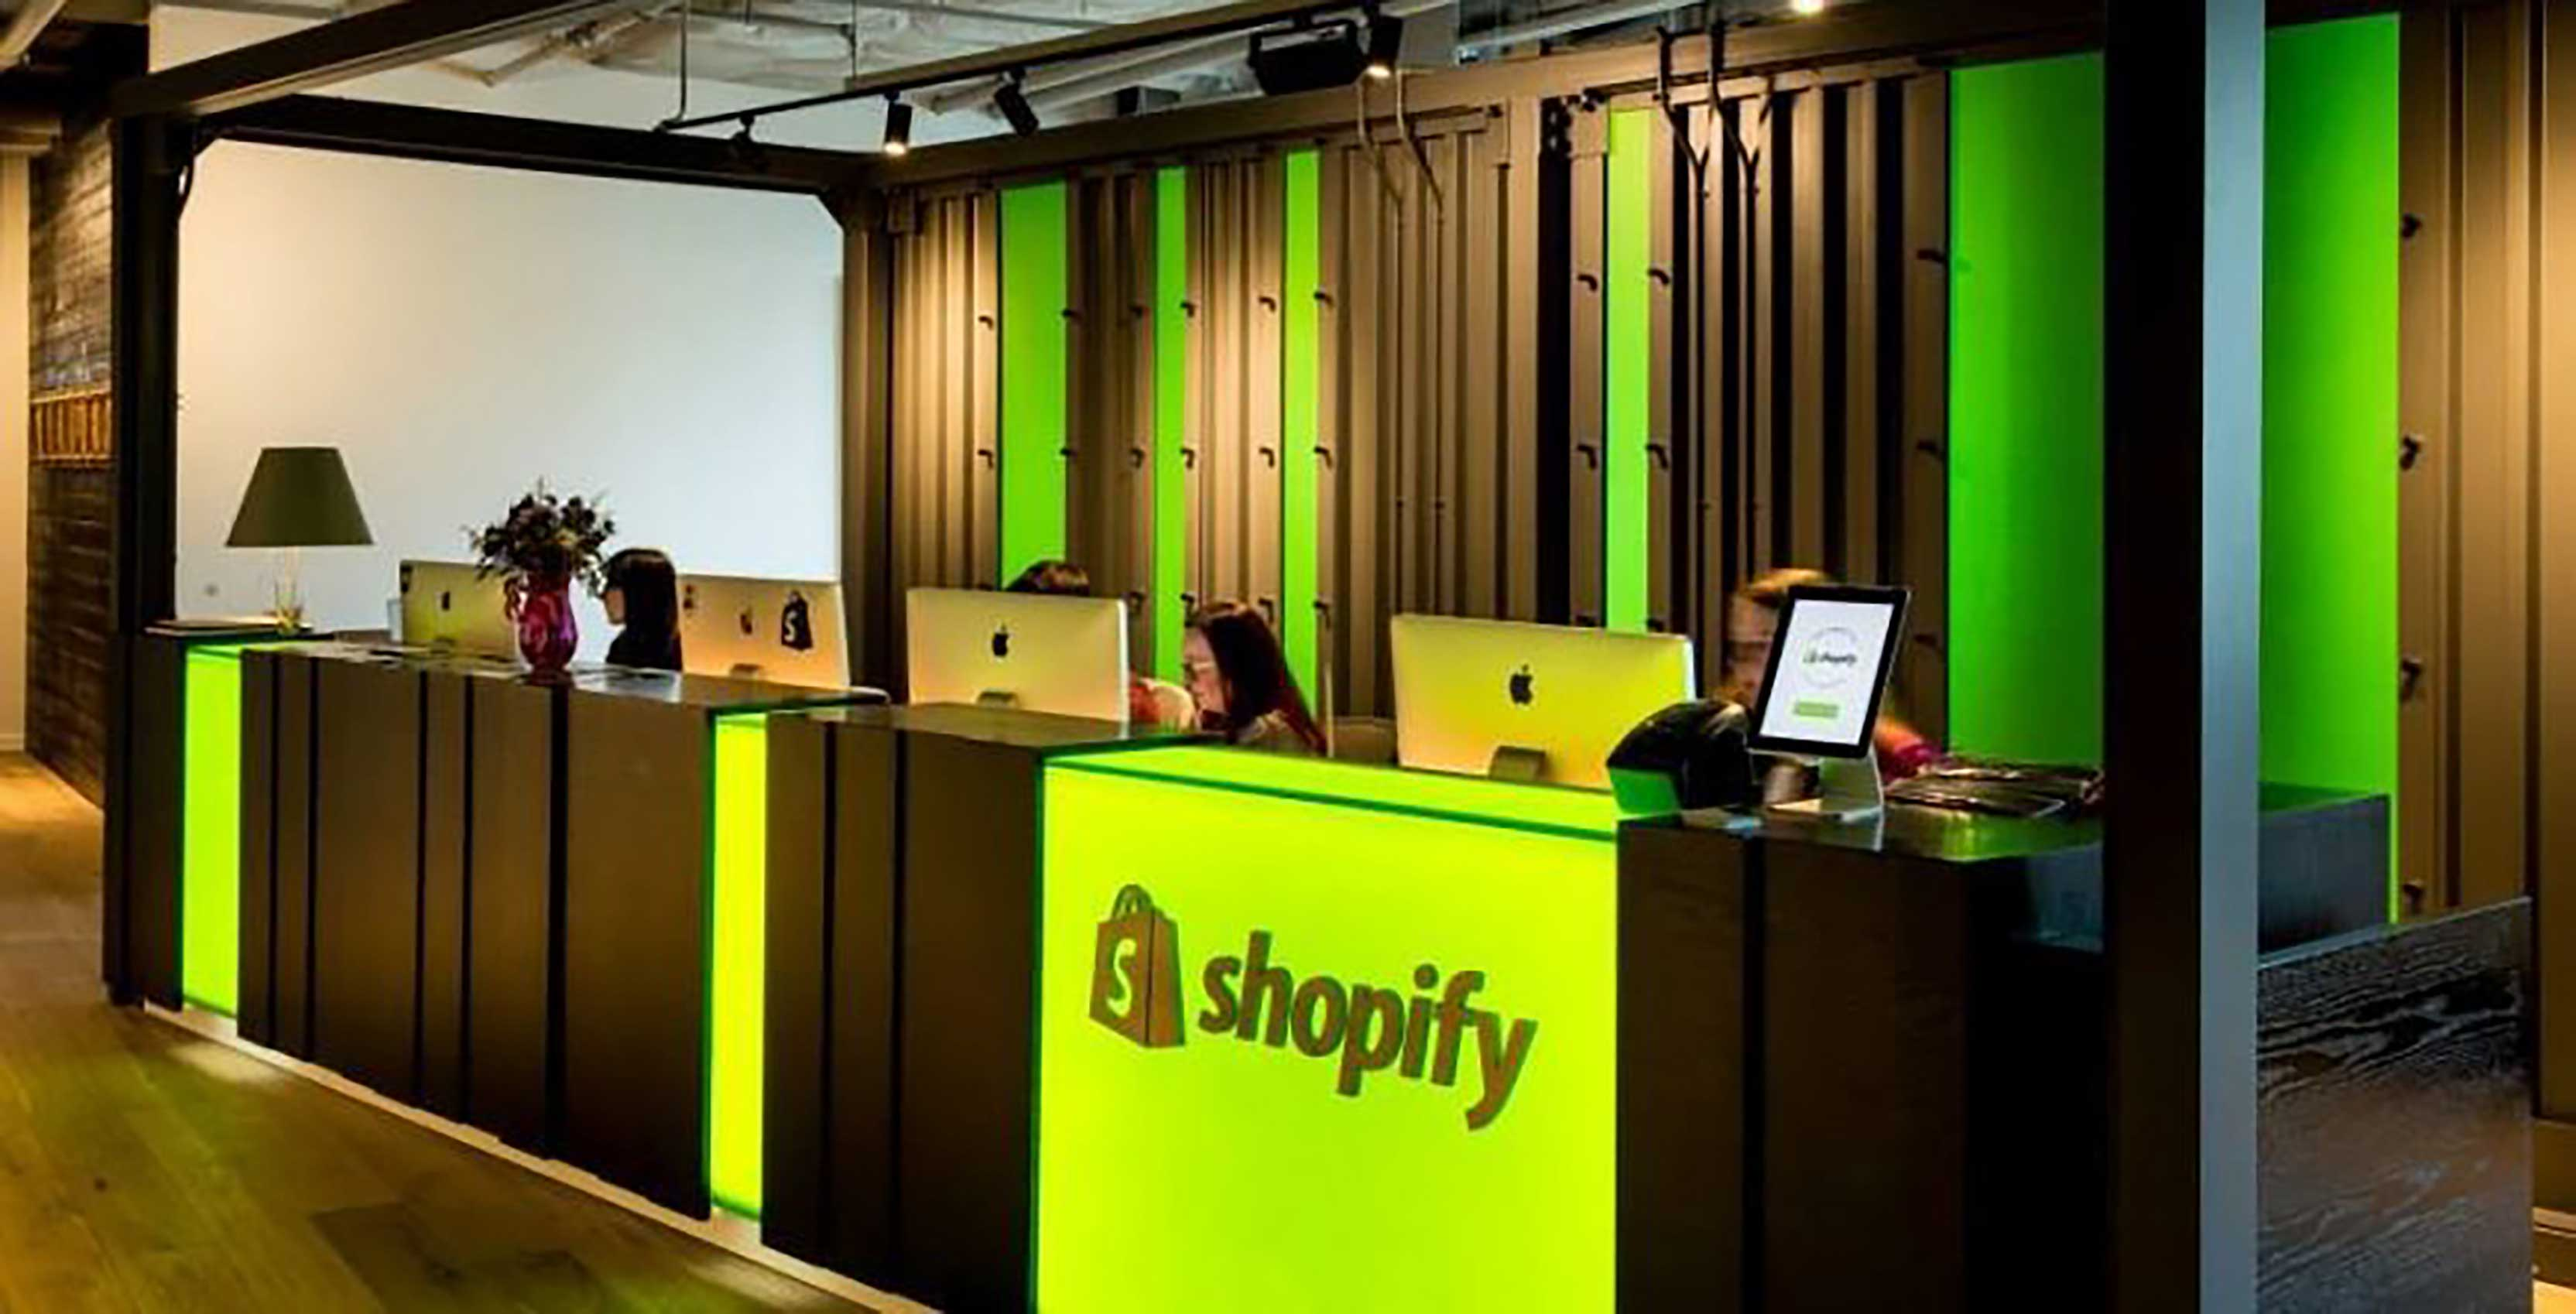 Shopify desk in office